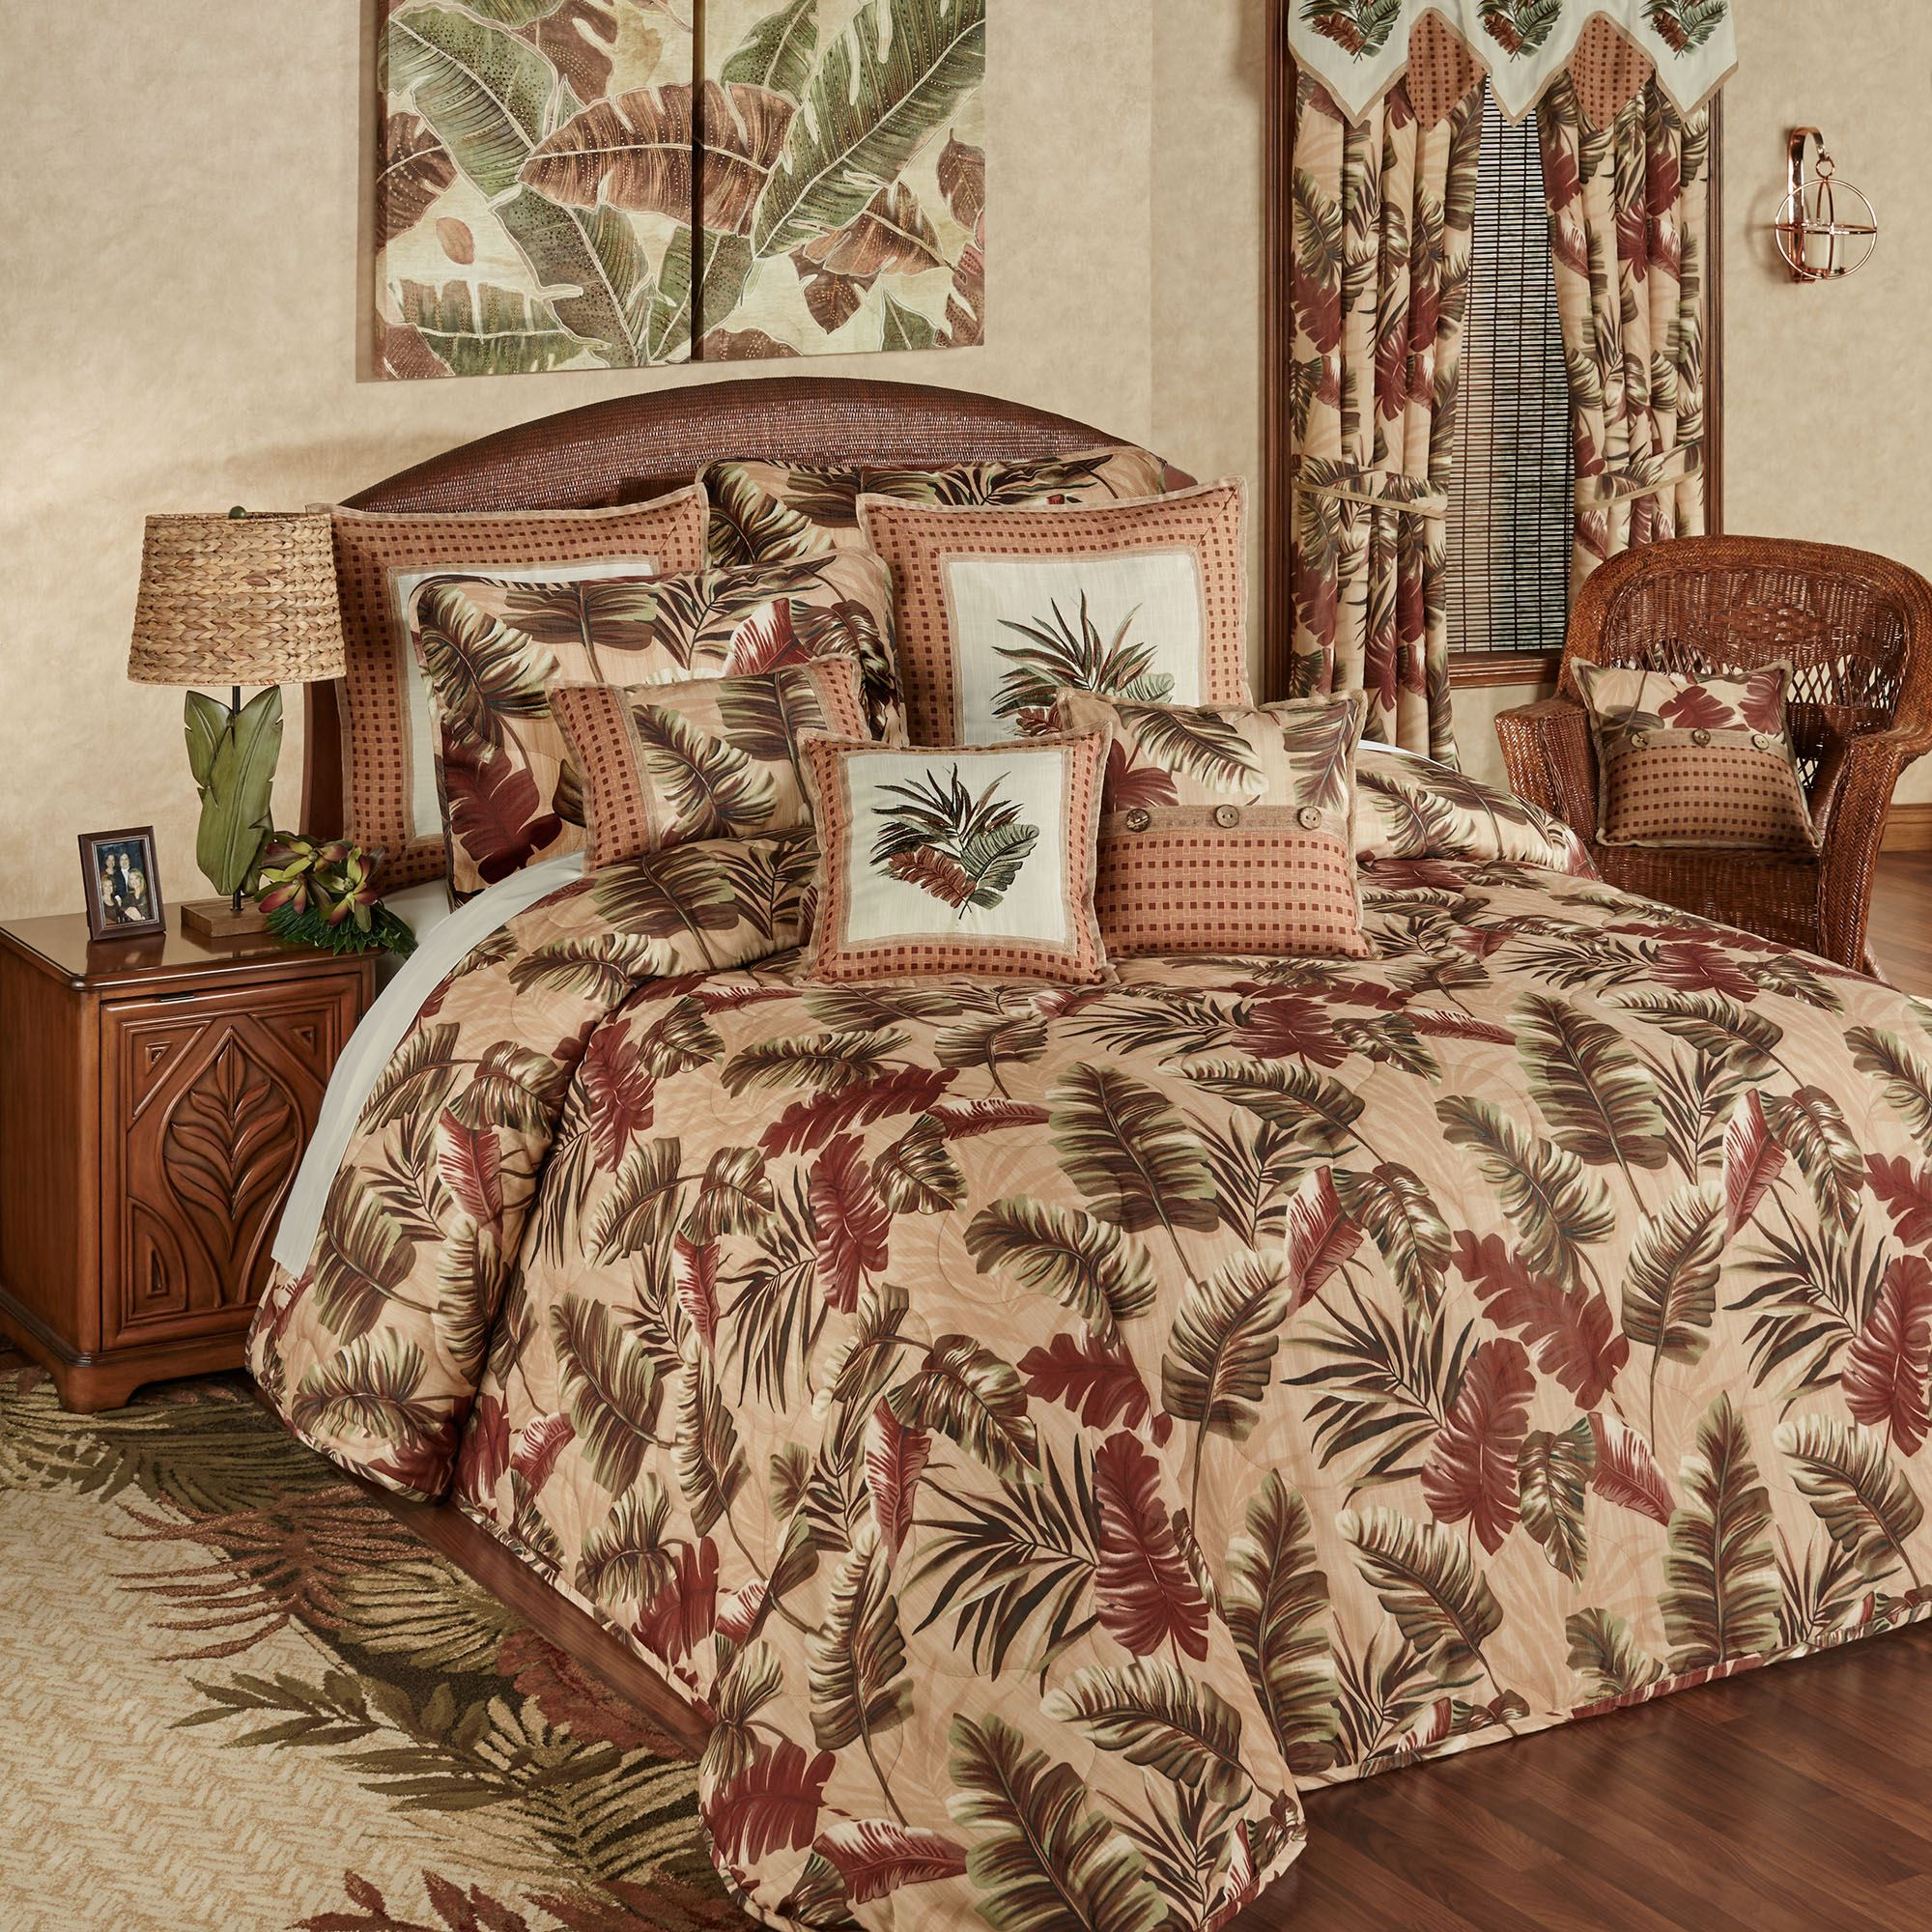 Key West Oversized Quilted Tropical Bedspread Bedding